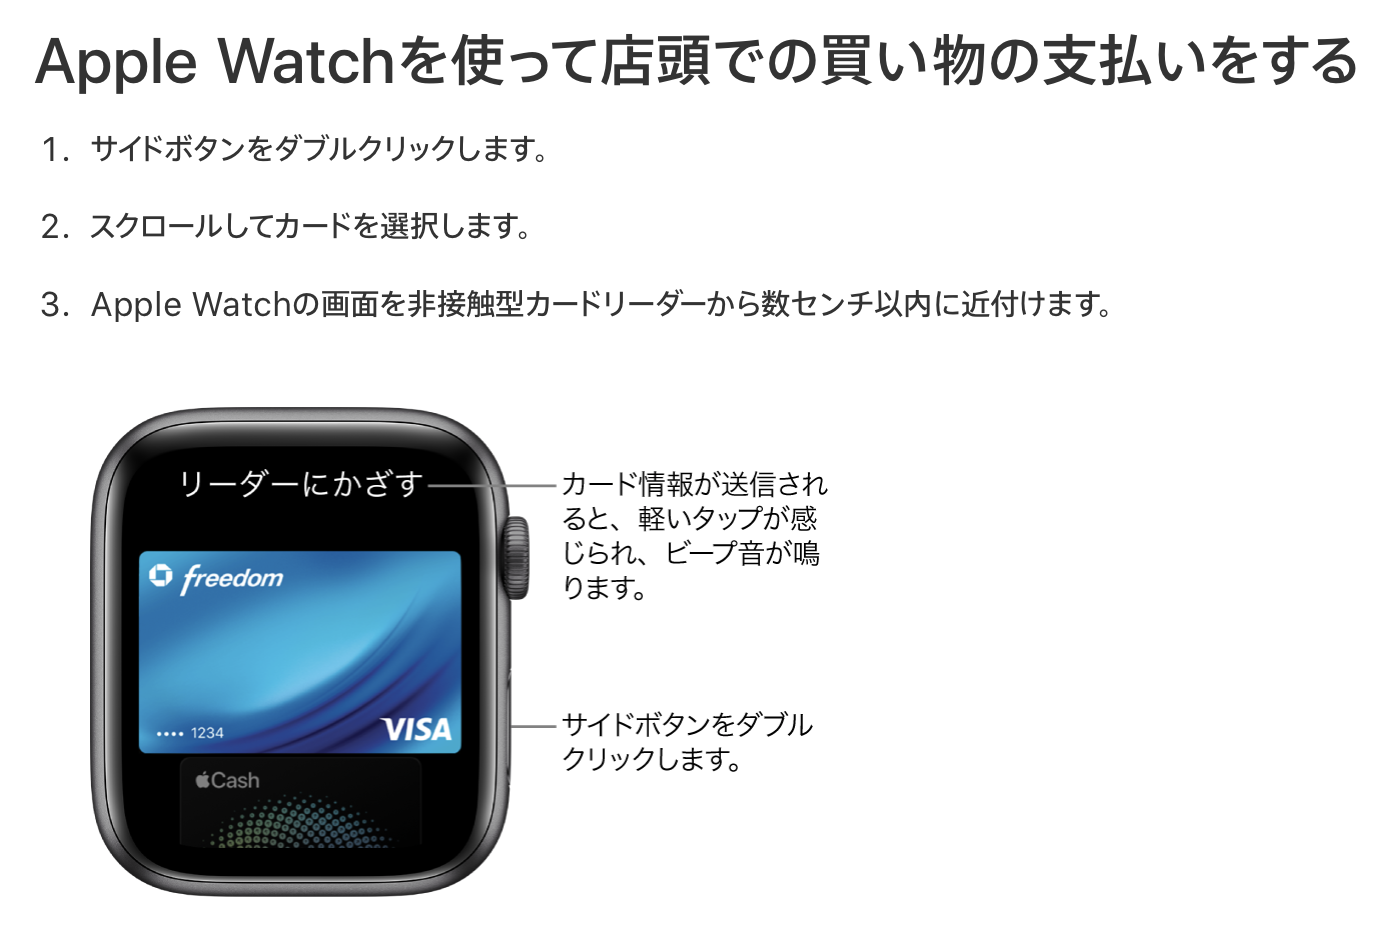 Apple Watch で Apple Pay